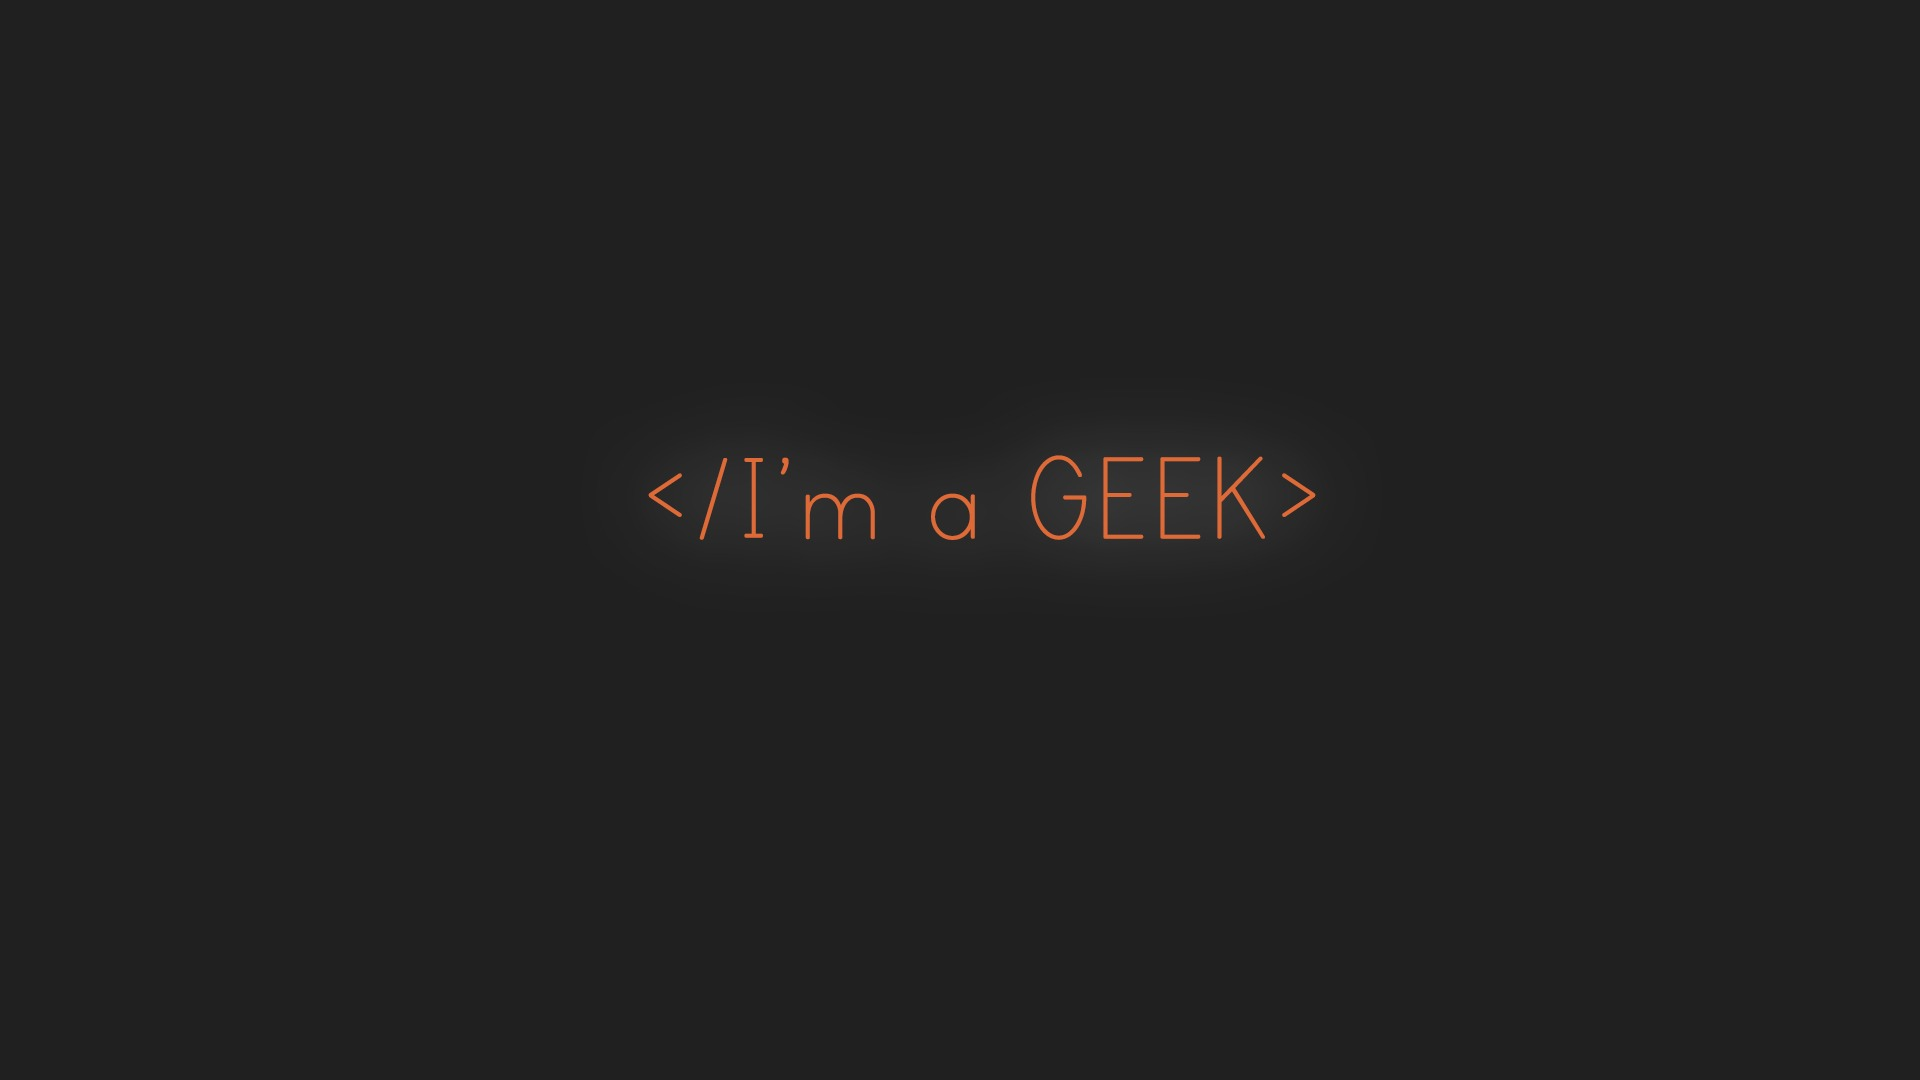 geek code wallpaper 67757